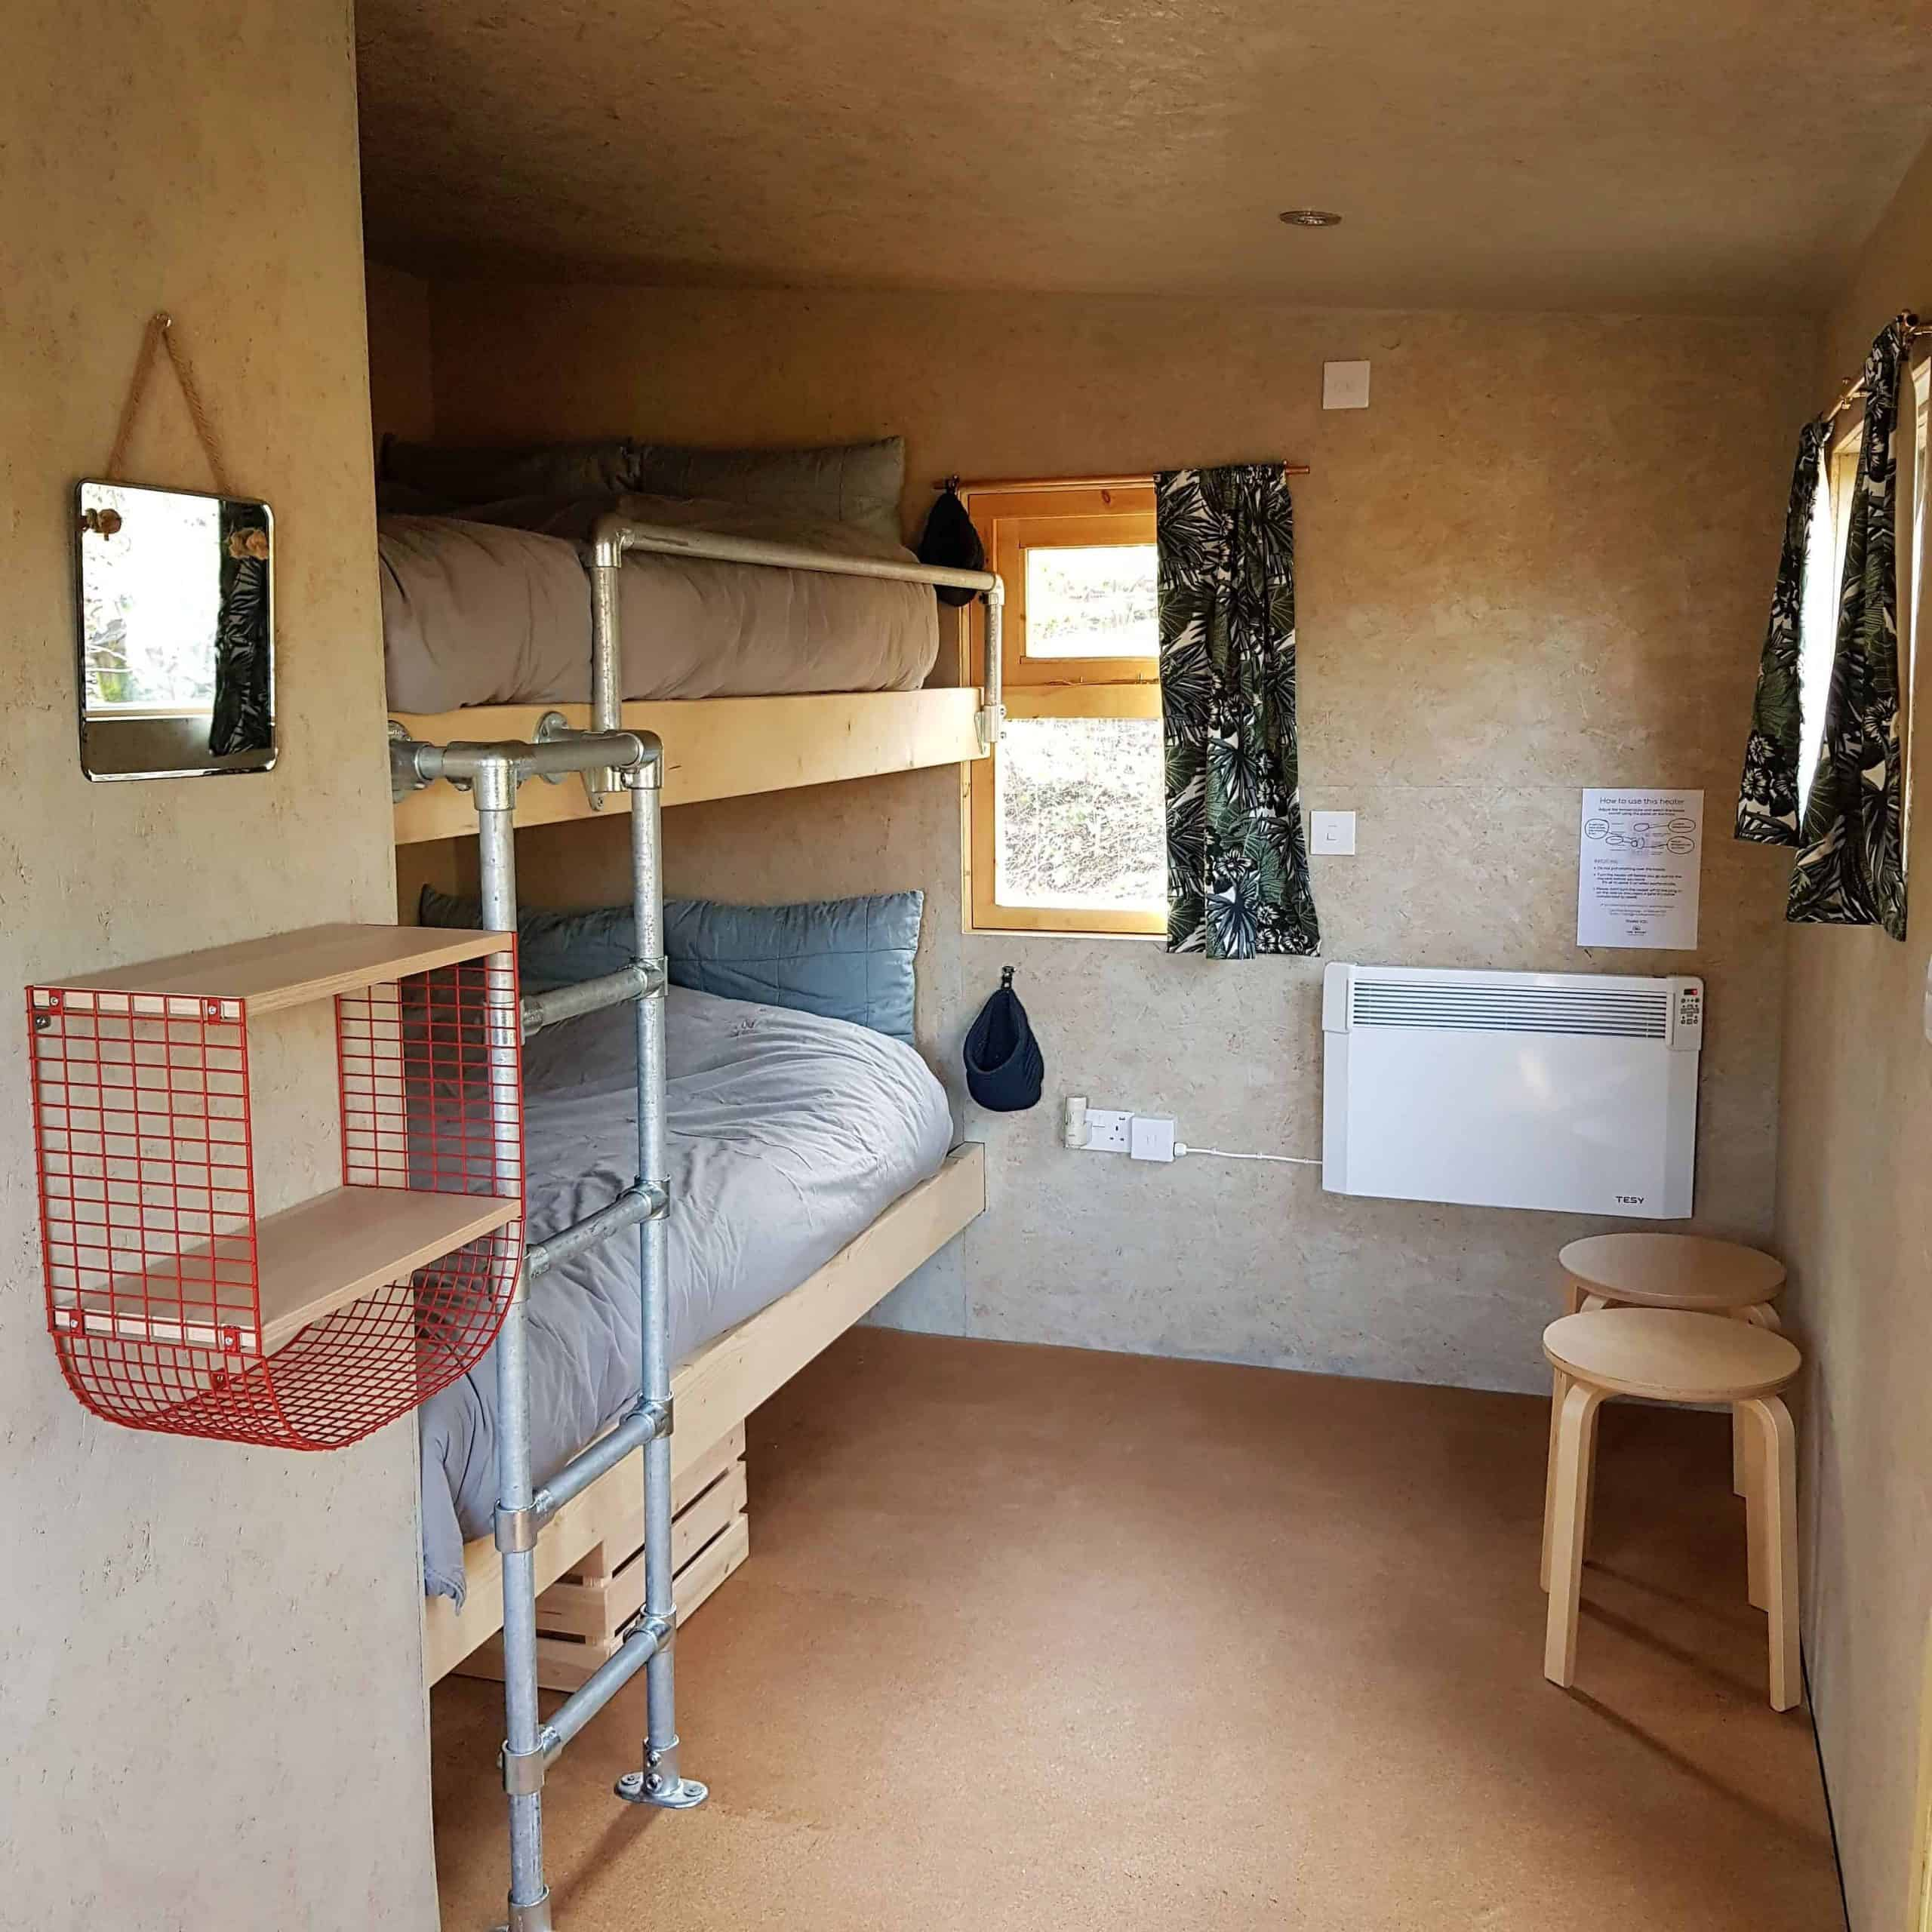 Big 4ft bunk beds with cosy bedding and heater